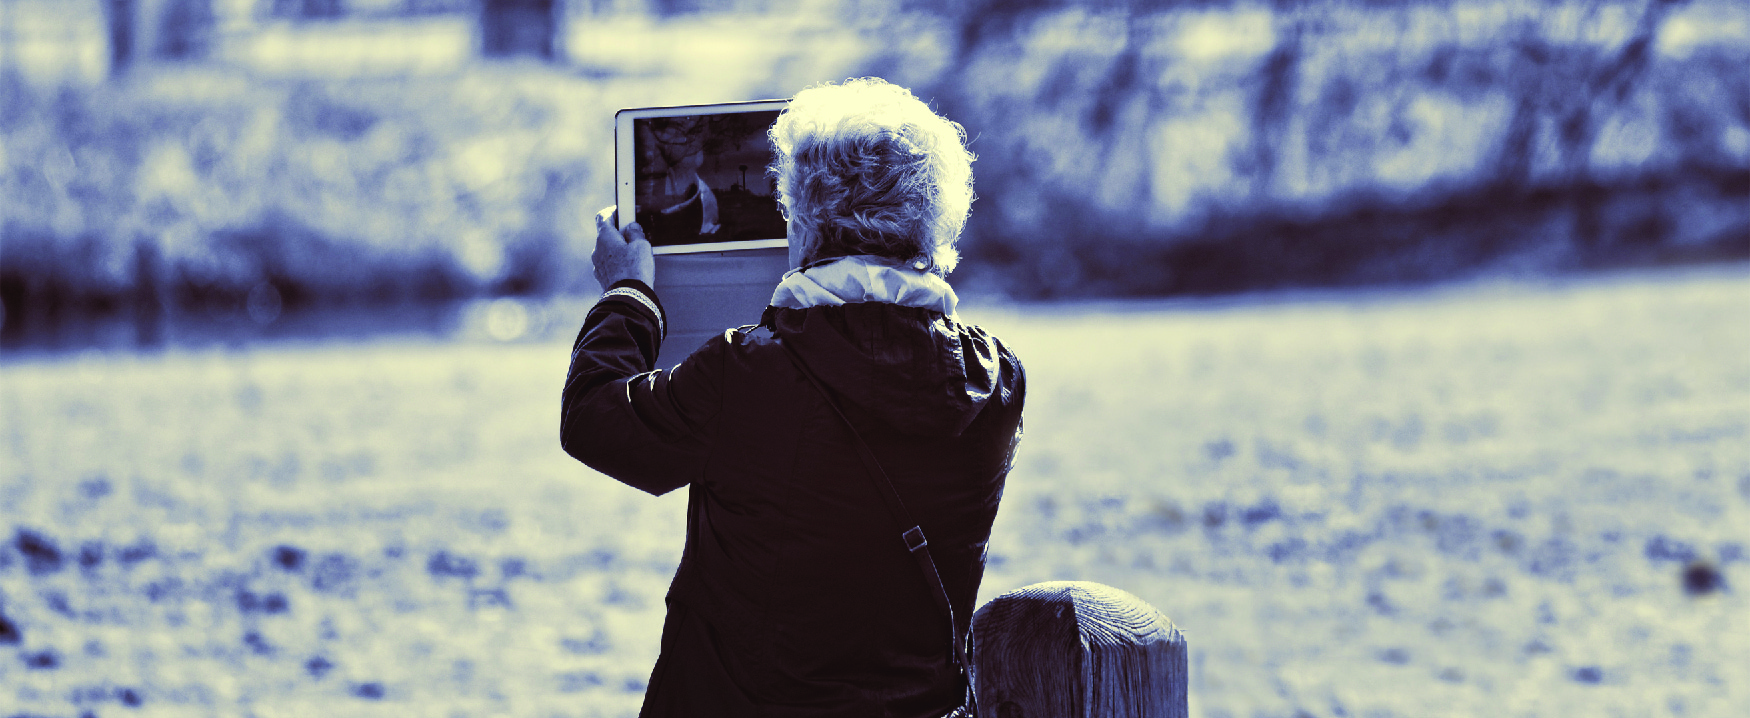 Picture of a person in a field by a stream holding up a computer tablet.